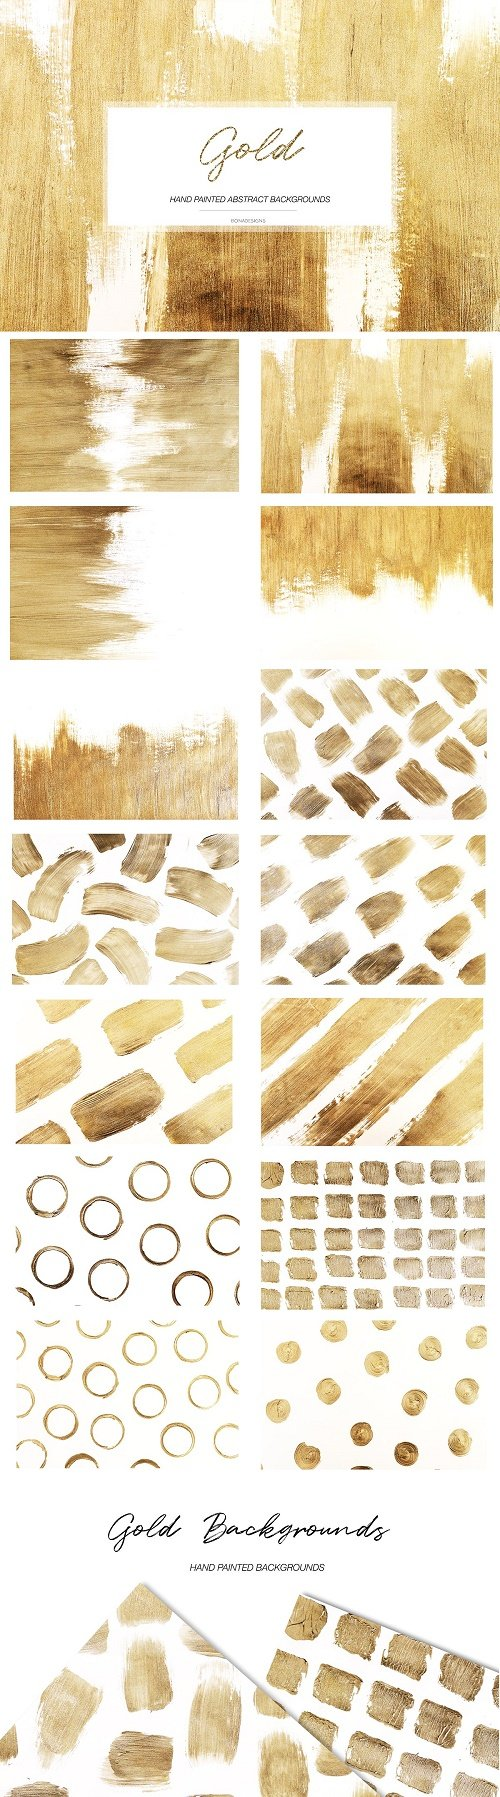 Gold Abstract Backgrounds - 4605460